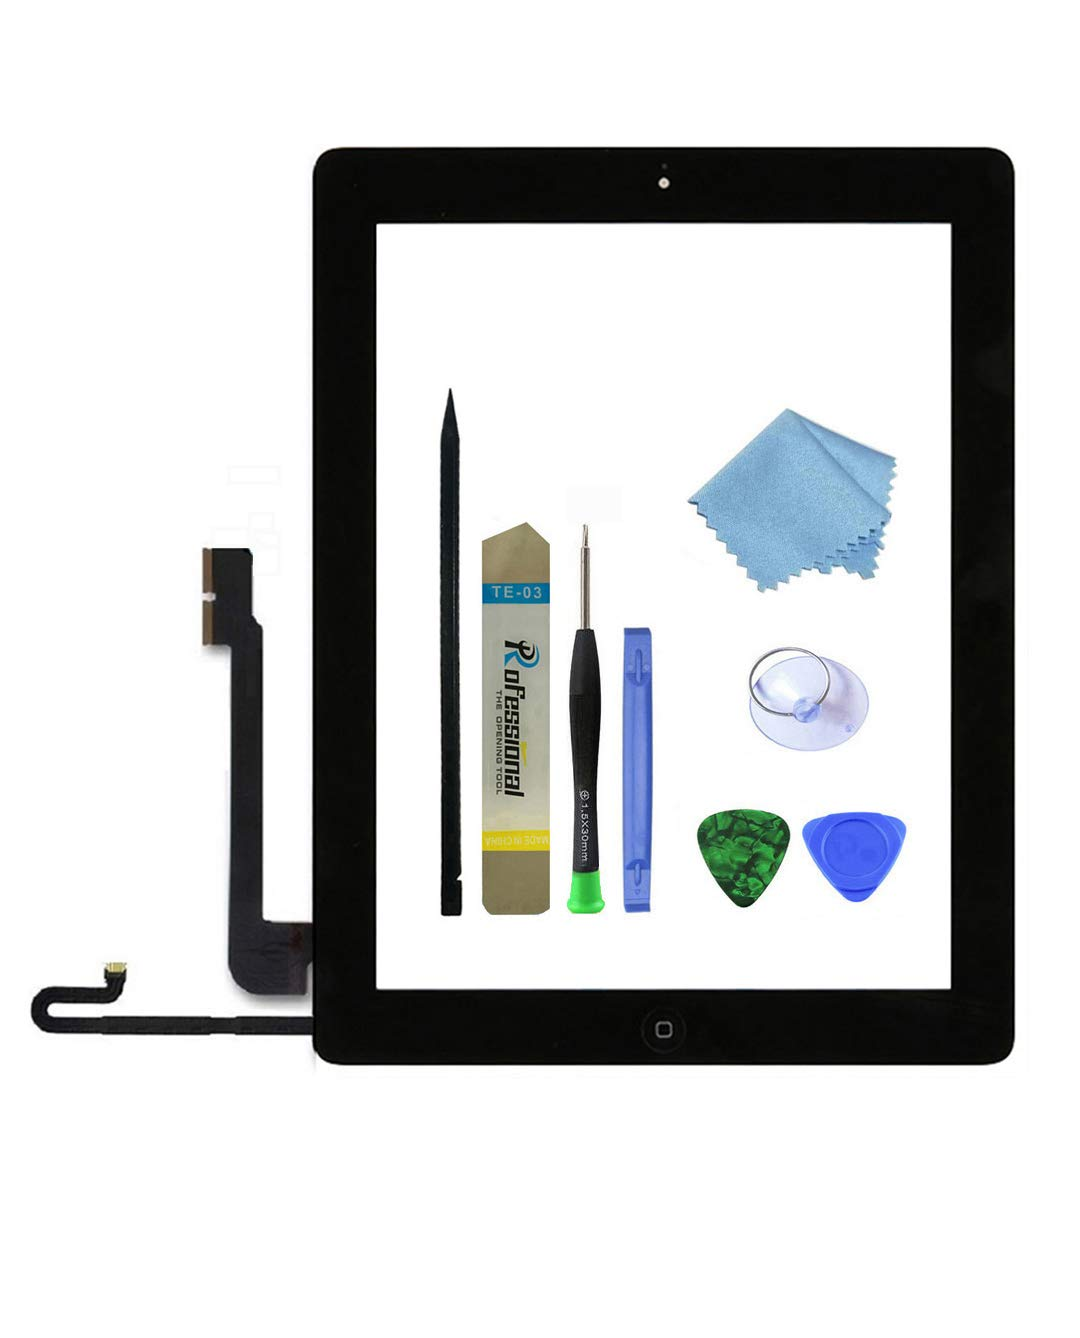 Zentop Touch Screen Digitizer replacement Assembly for Black iPad 4 Model A1458, A1459, A1460 whith Home Button, Camera Holder ,Preinstalled Adhesive,Frame Bezel, tool Kit. by Zentop